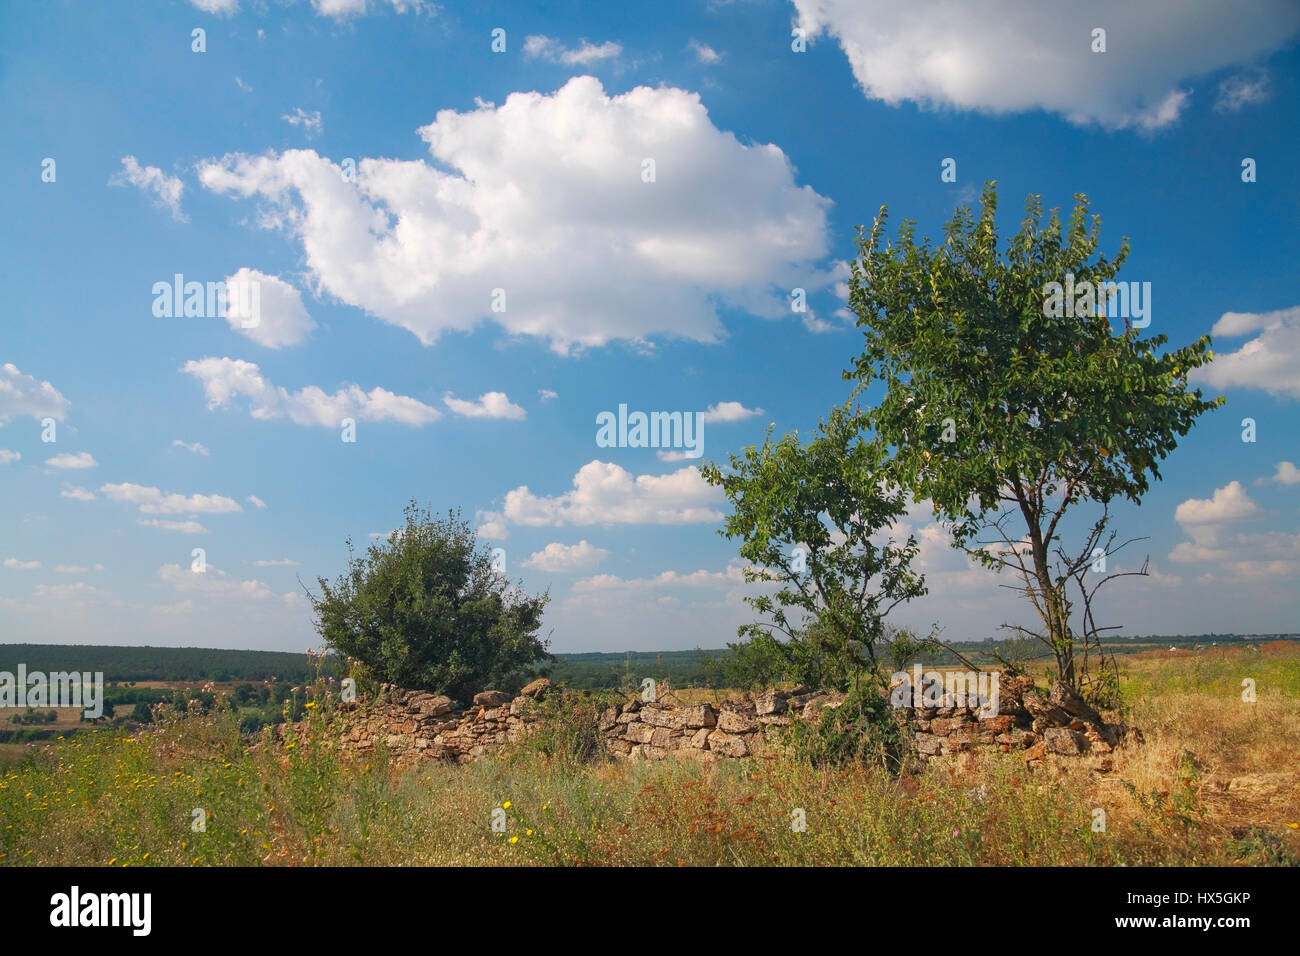 Rural landscape, a ruined fence made of natural stone, bush, pasture, in the background against the blu sky with Stock Photo